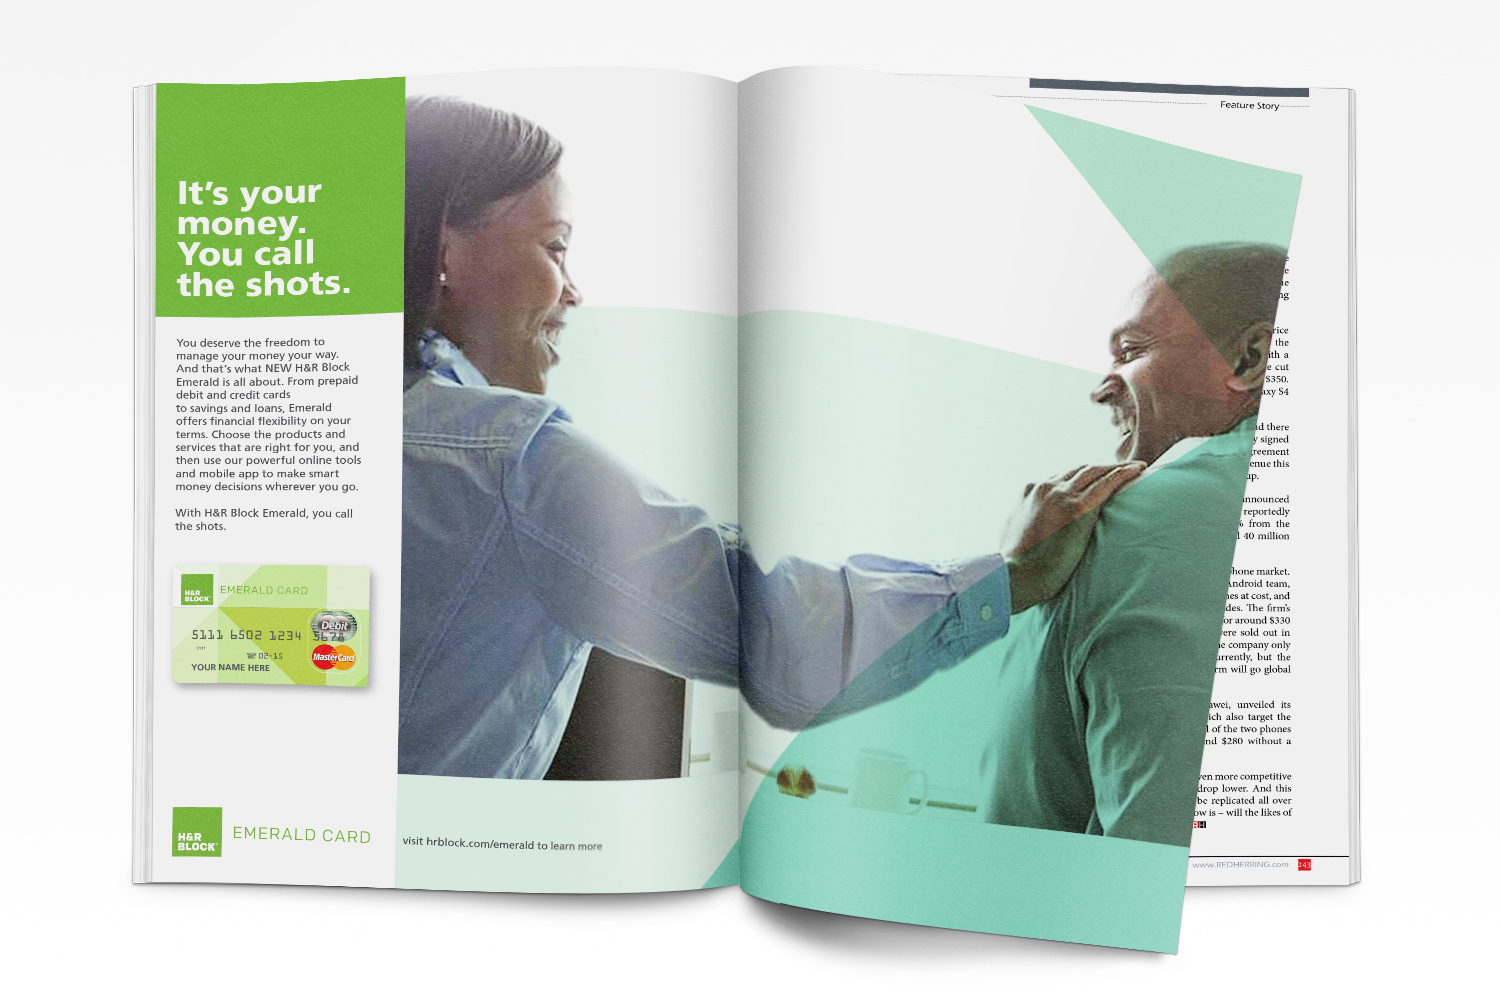 """H&R Block Emerald Advertising : """"It's your money. You call the shots."""" Combined with a clean, contemporary design, this campaign initiative was so money"""